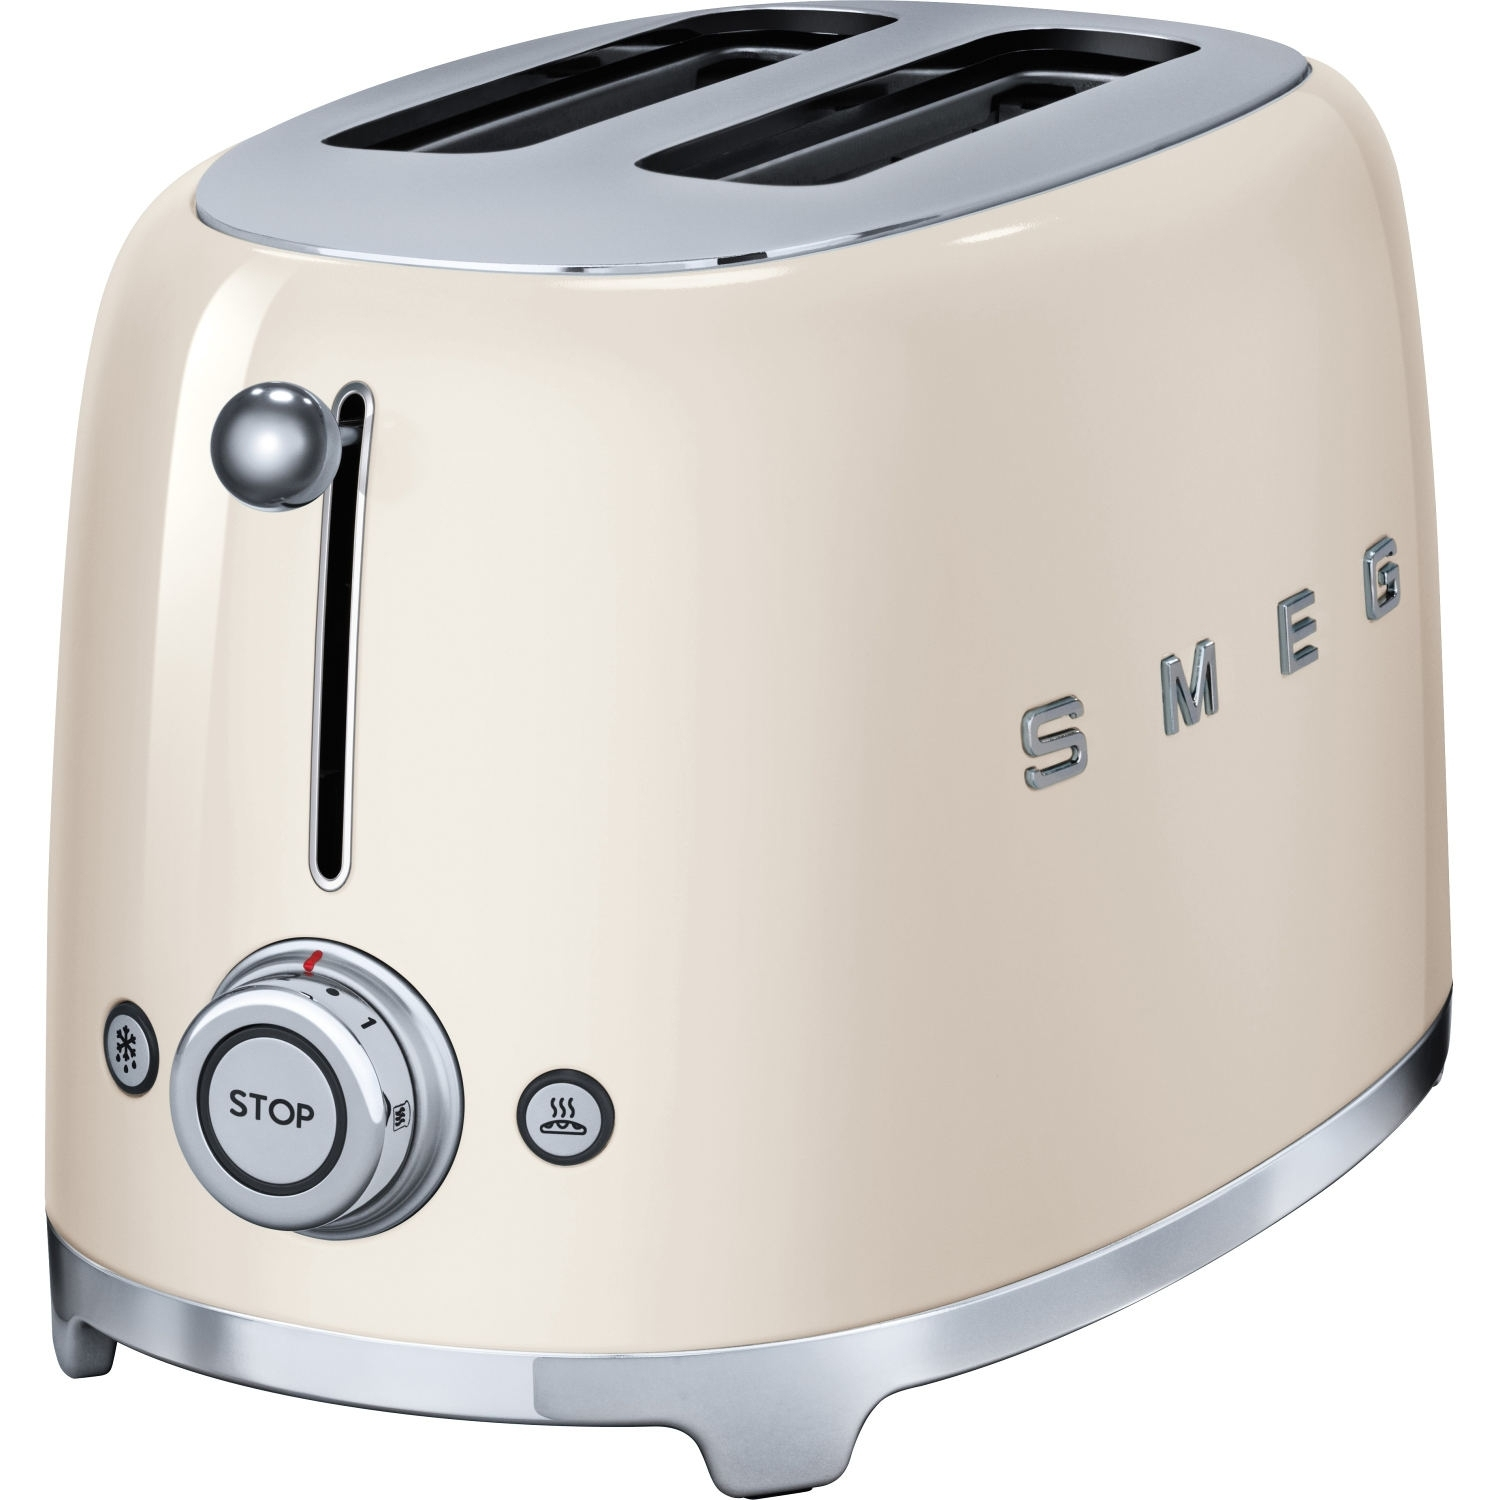 Smeg 2 Slice Toaster - Cream - 1